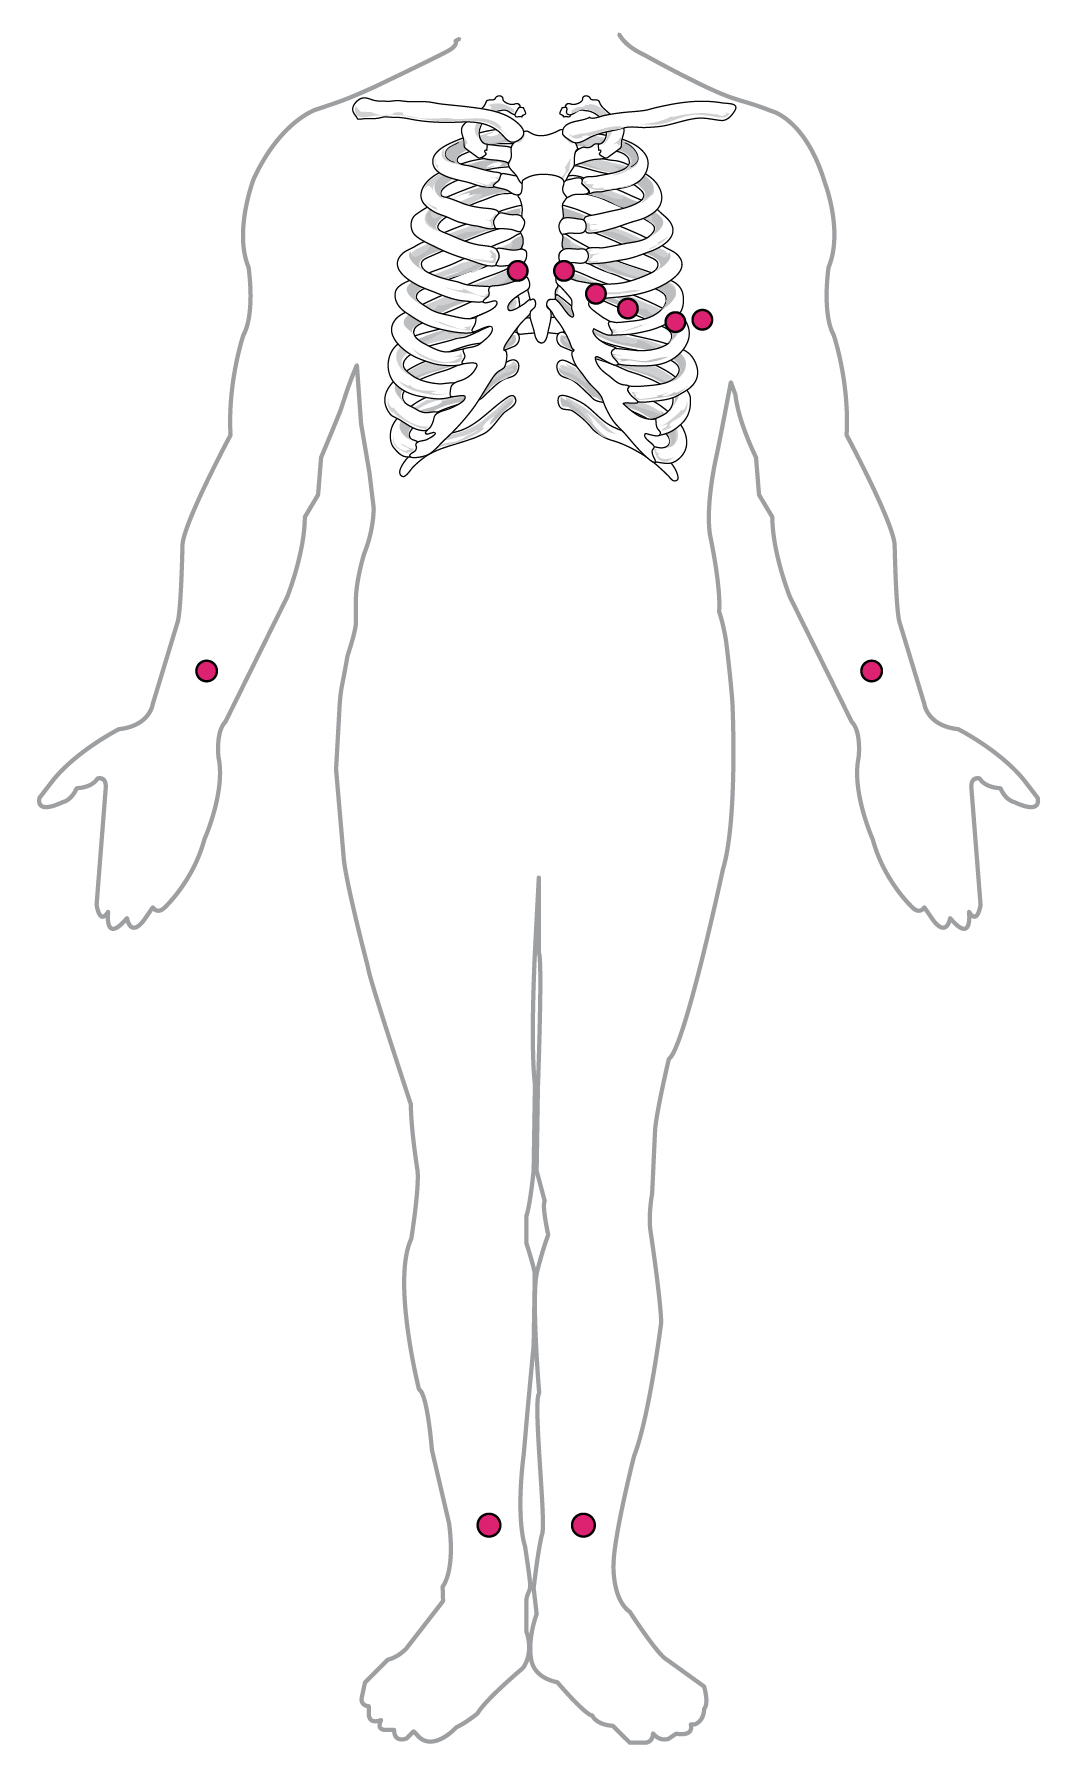 Electrocardiogram Cardiac Muscle And Electrical Activity By Diagram Electrocar Diogram This Shows The Points Where Electrodes Are Placed On Body For An Ecg